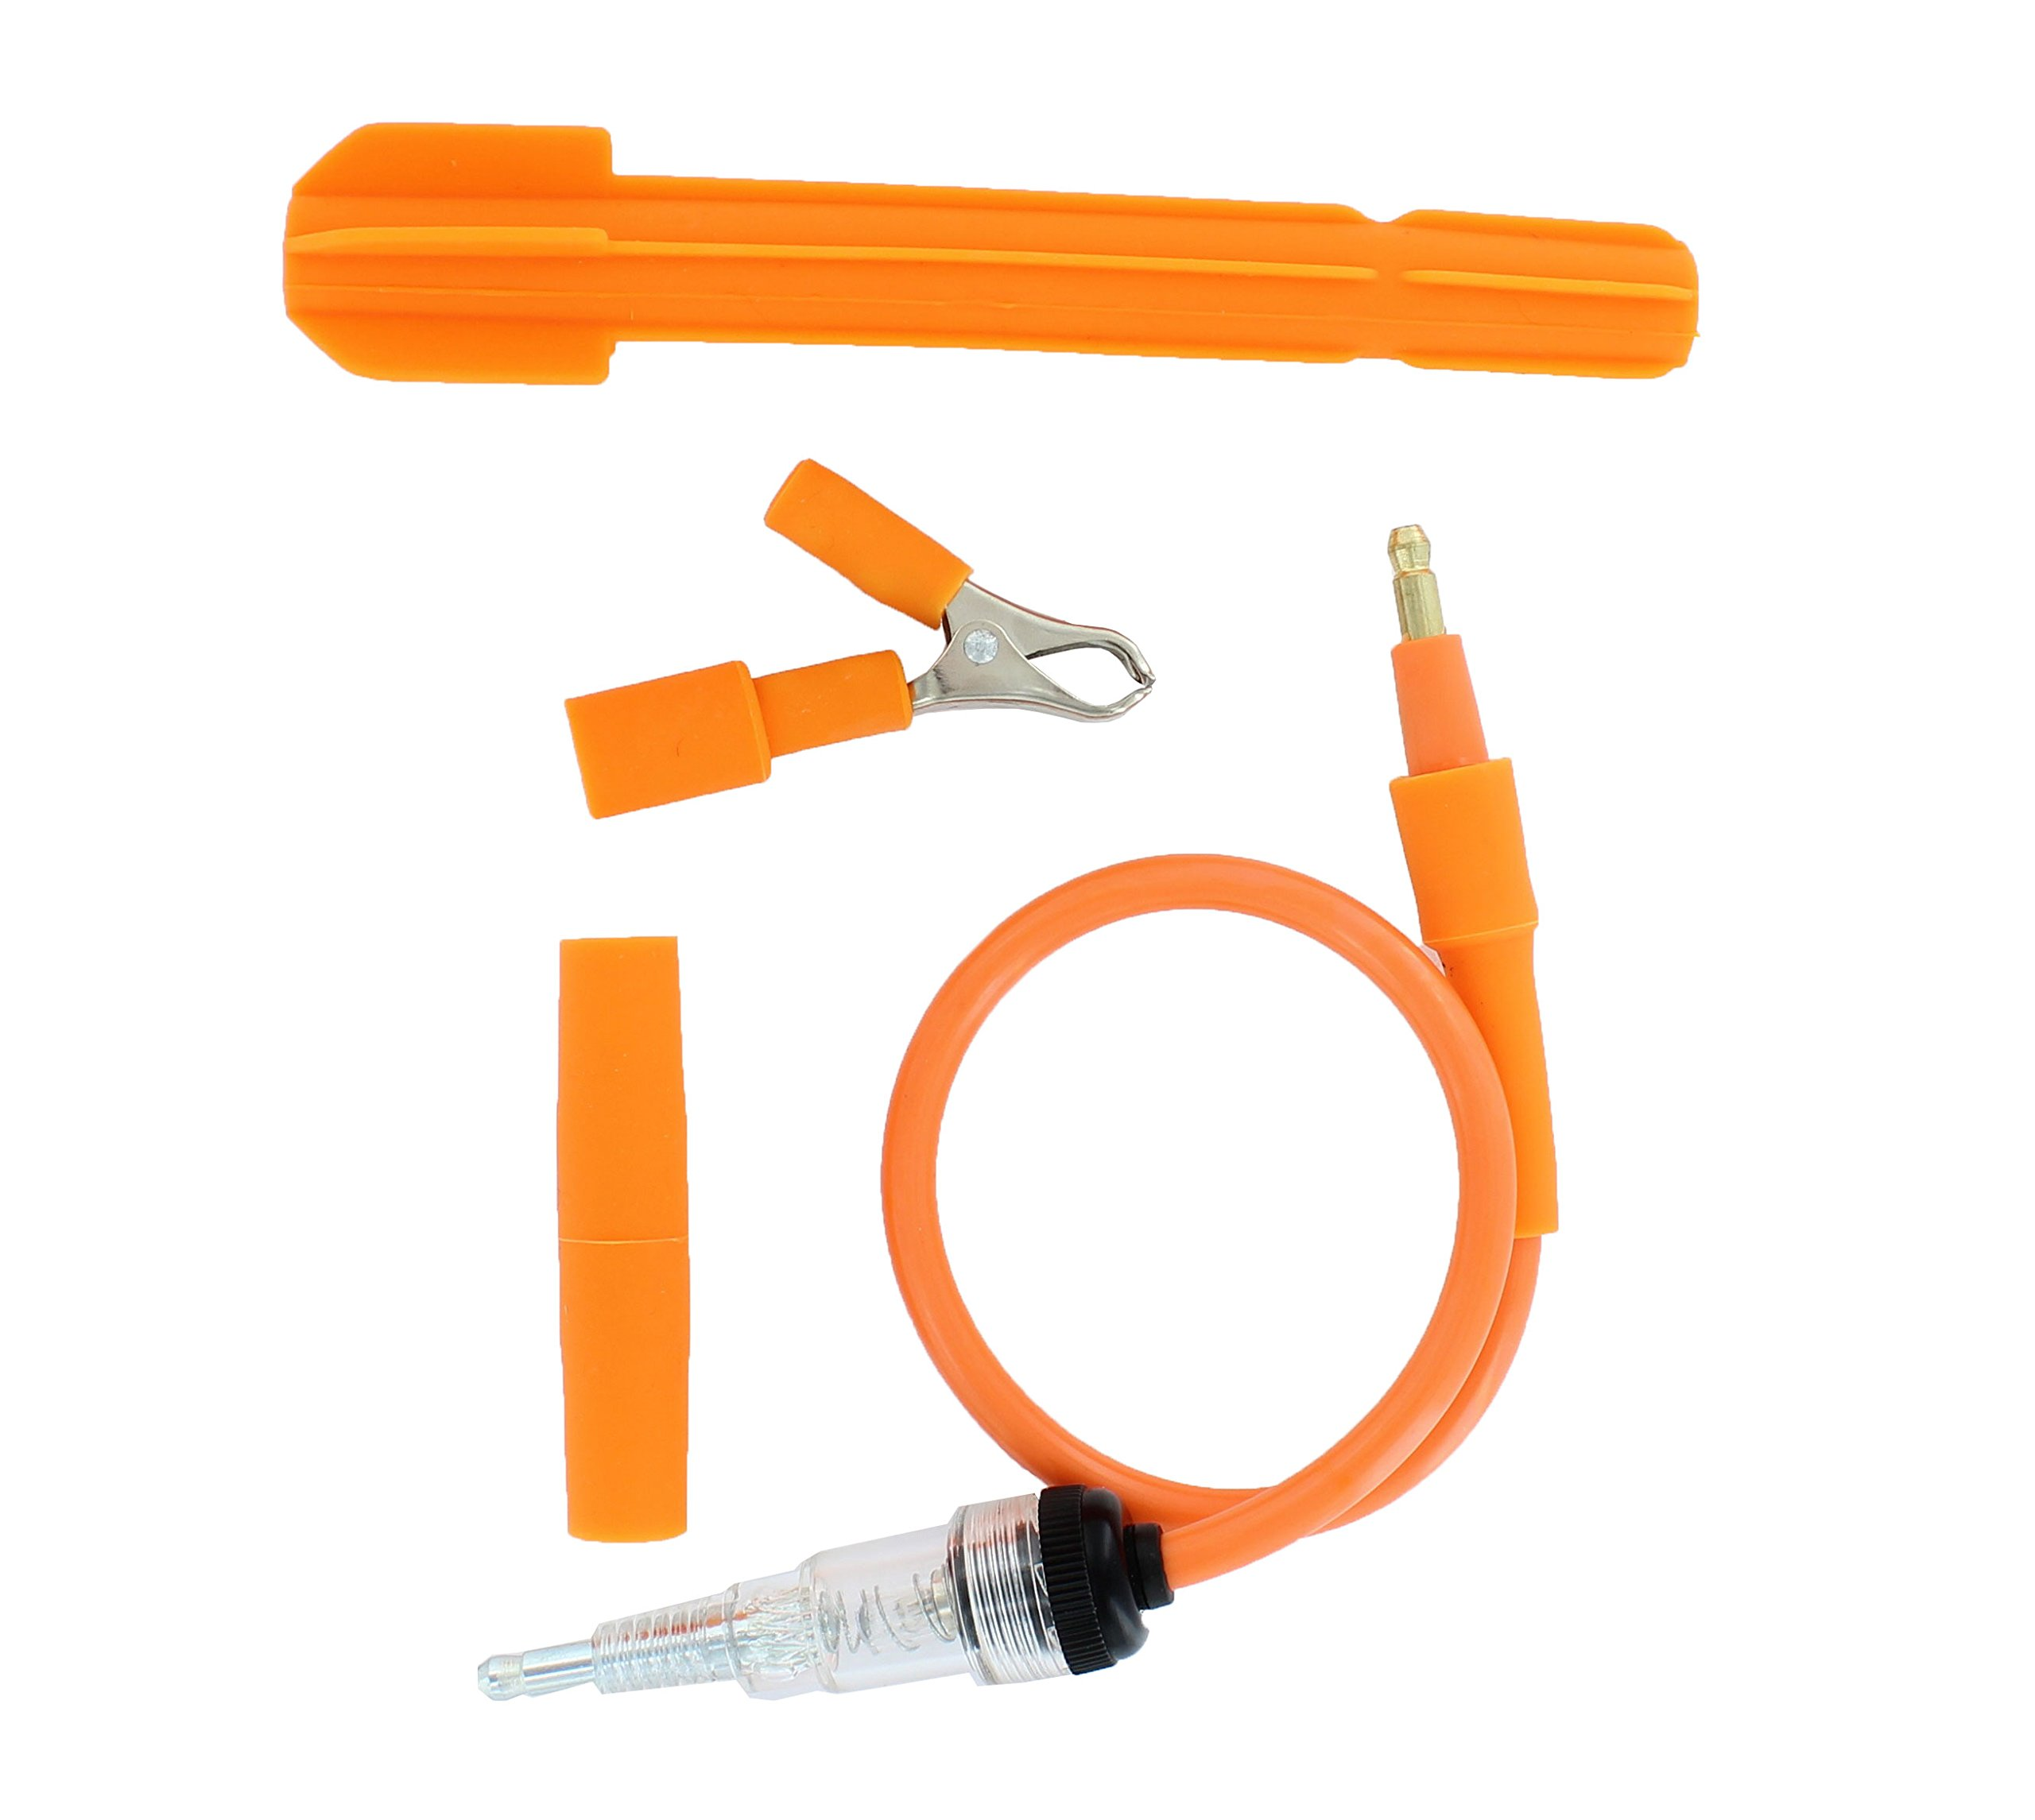 Tool Aid 23970 in-Line Spark Checker Kit for Recessed Plug by Tool Aid (Image #1)